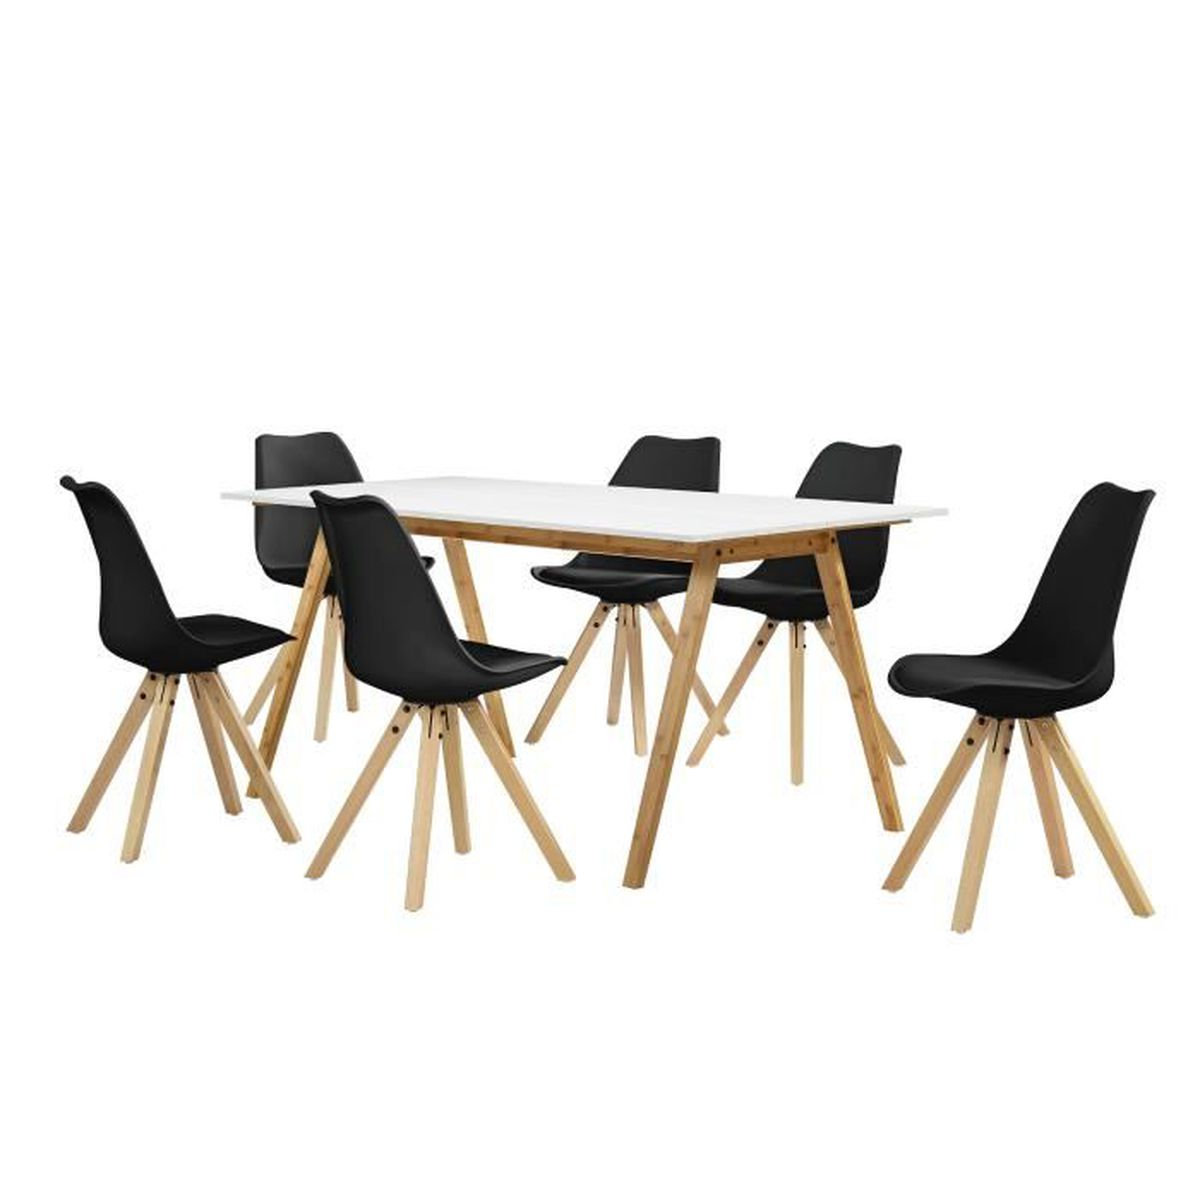 Table a manger 6 chaises maison design for Table a manger chaises